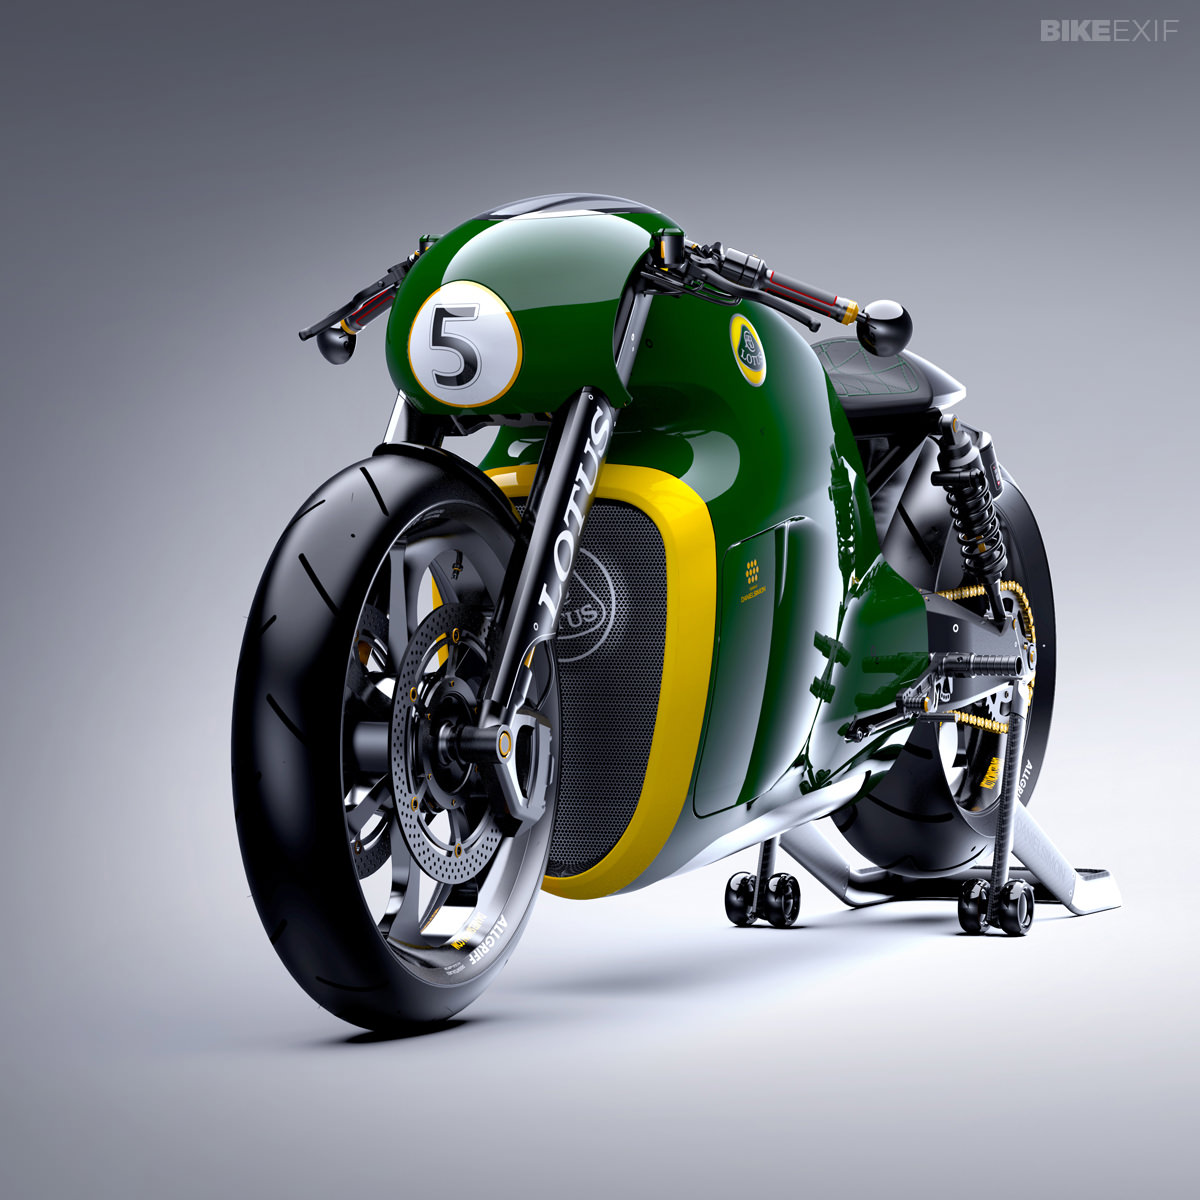 motorcycle background has  Top 5 Concept Motorcycles   Bike EXIF